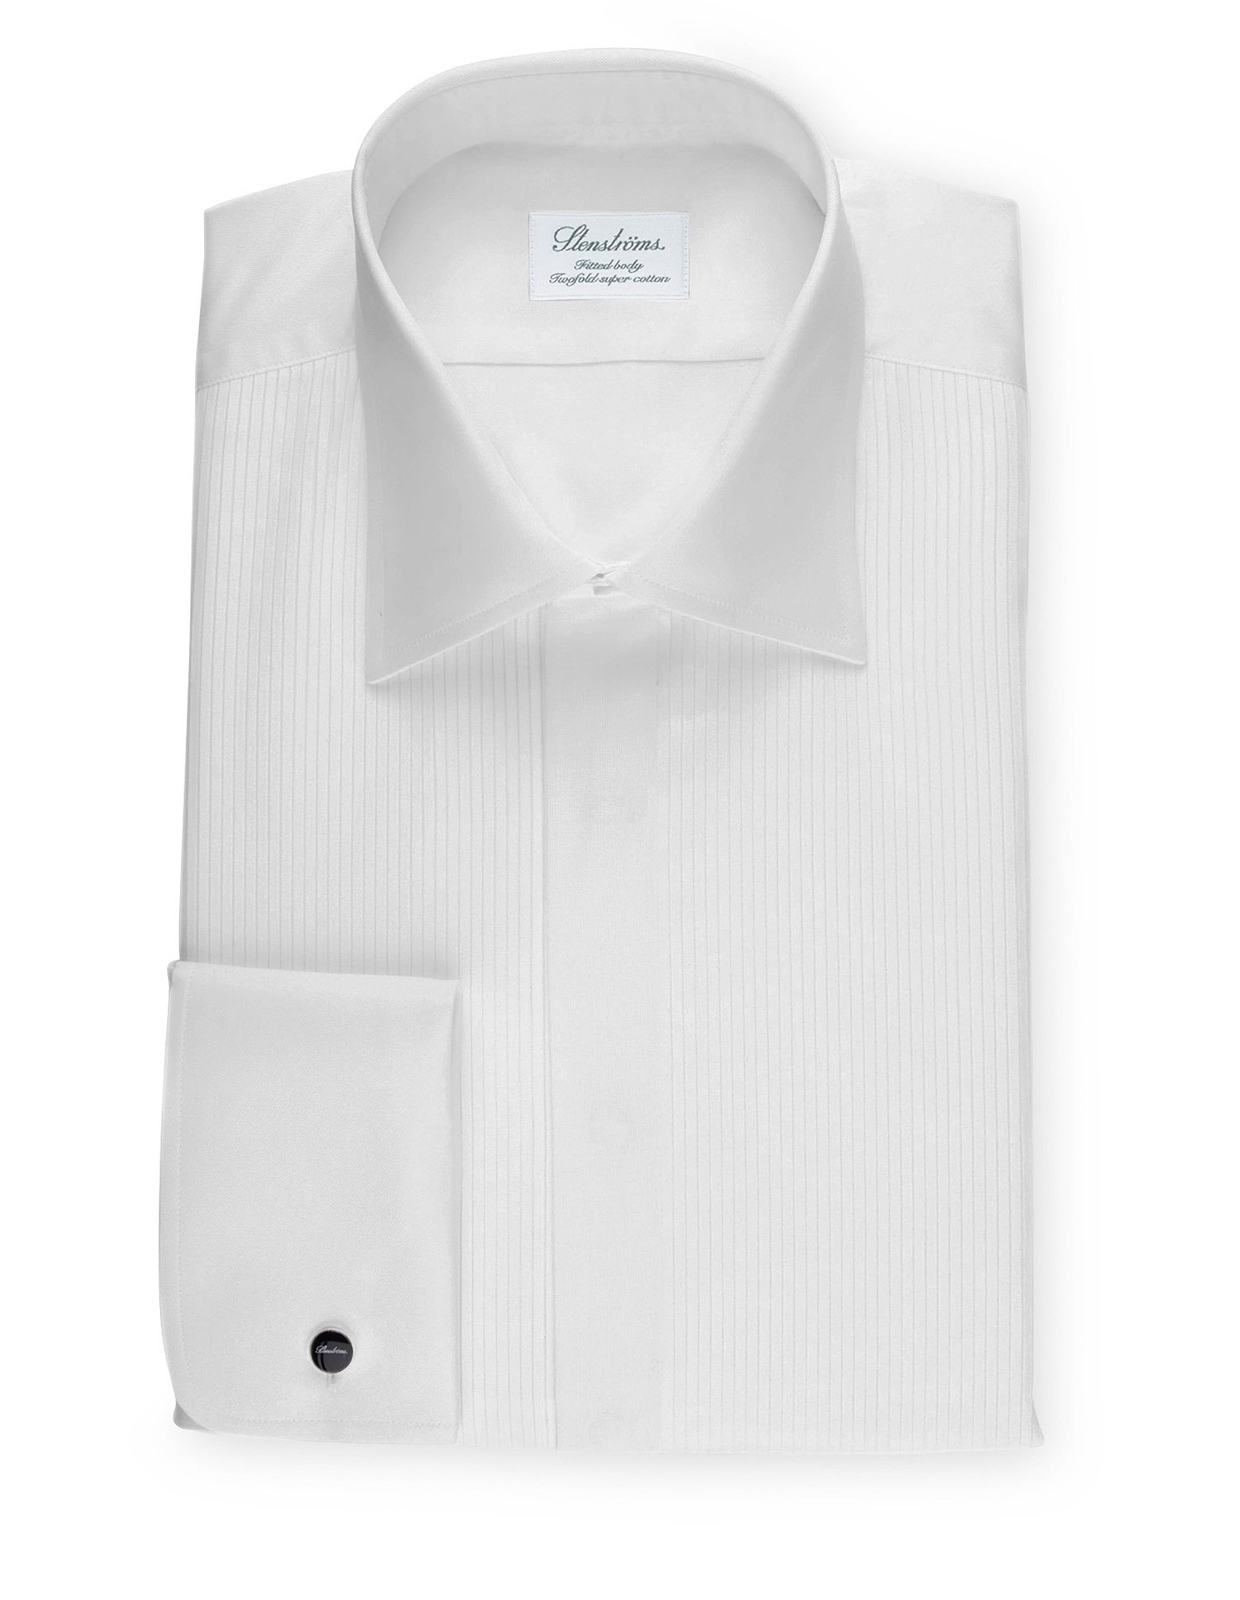 White Fitted Body Tuxedo Shirt With Classic Collar Vit